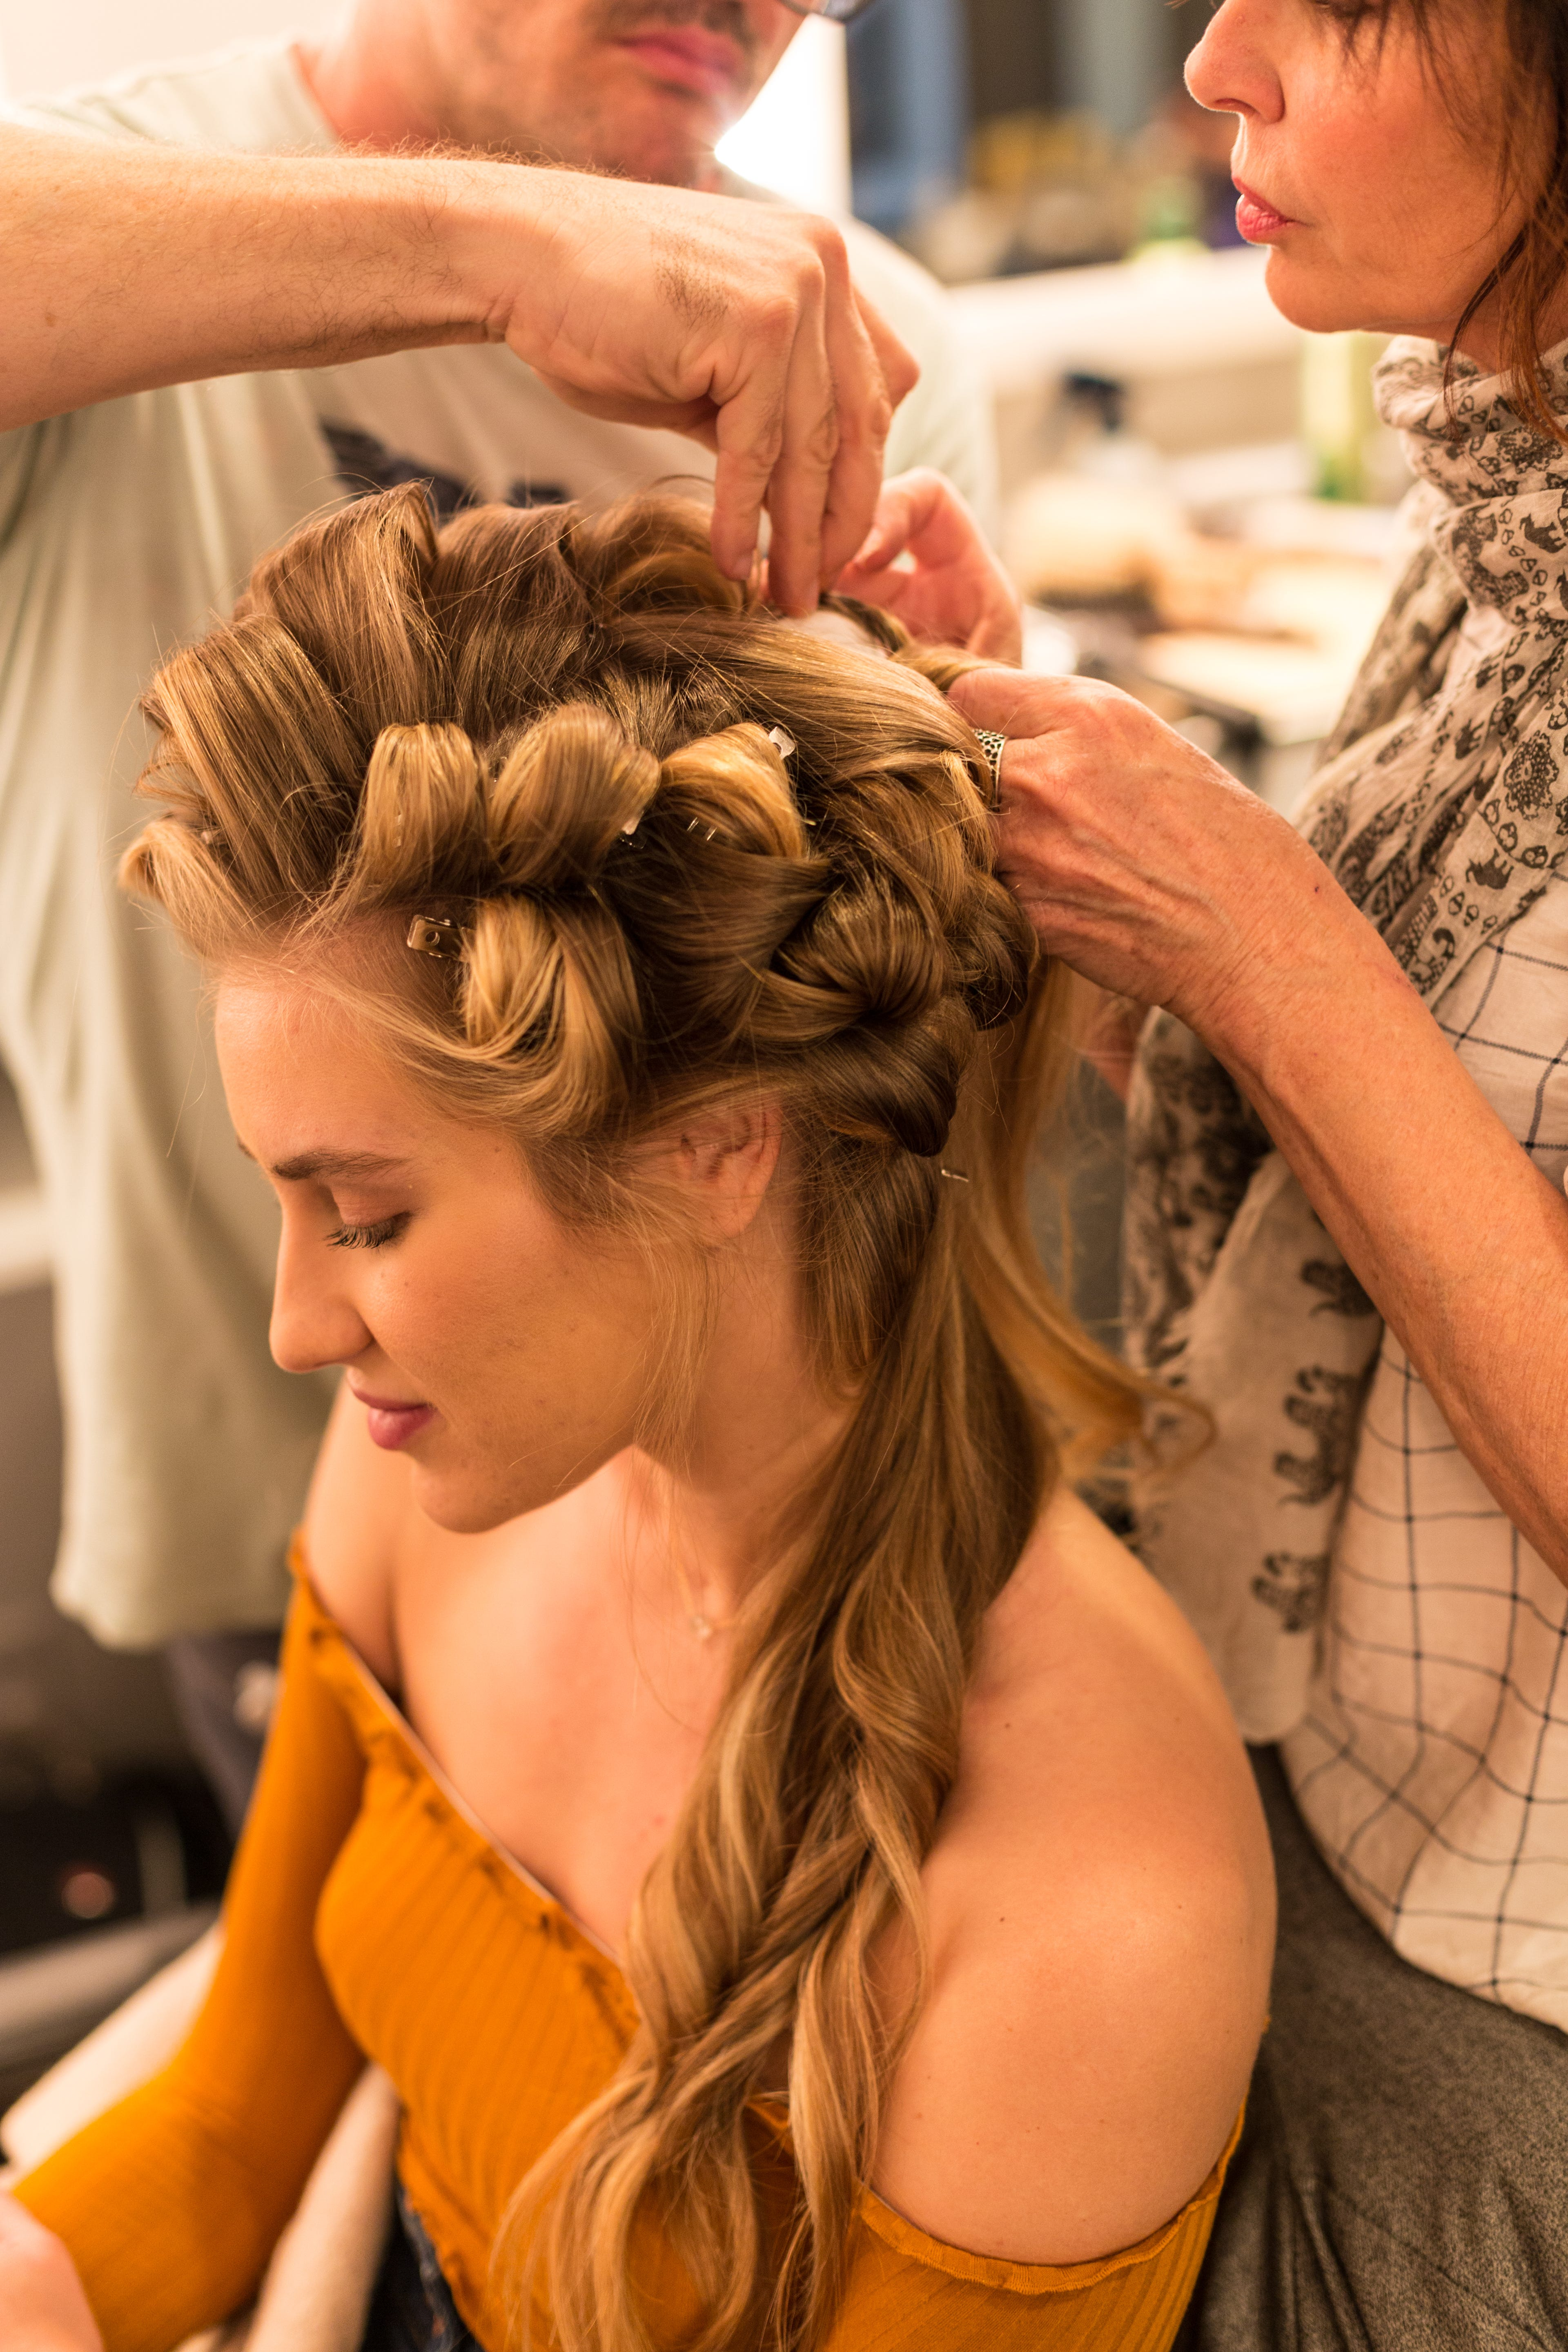 Tricks For Faking Good Hair In Commercials